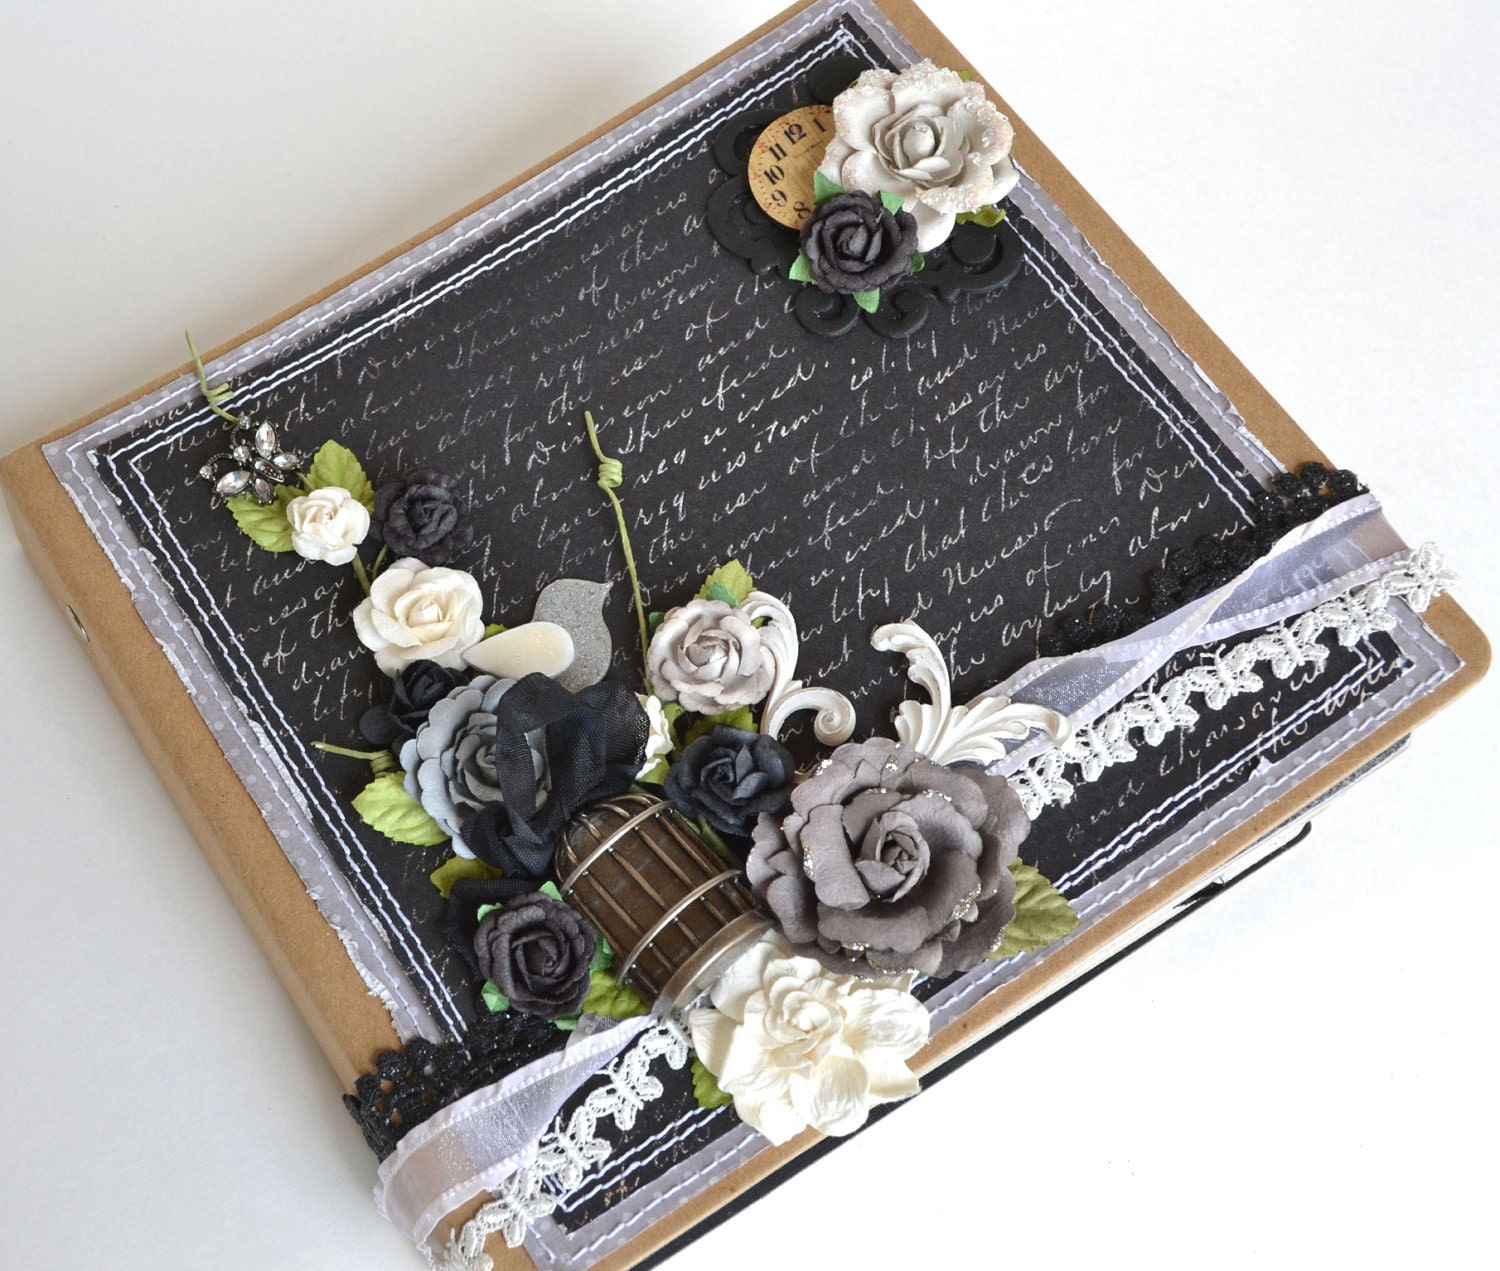 Coffee Book Album: Wedding Album Scrapbook 8x8 Black White Cream Mini Memory